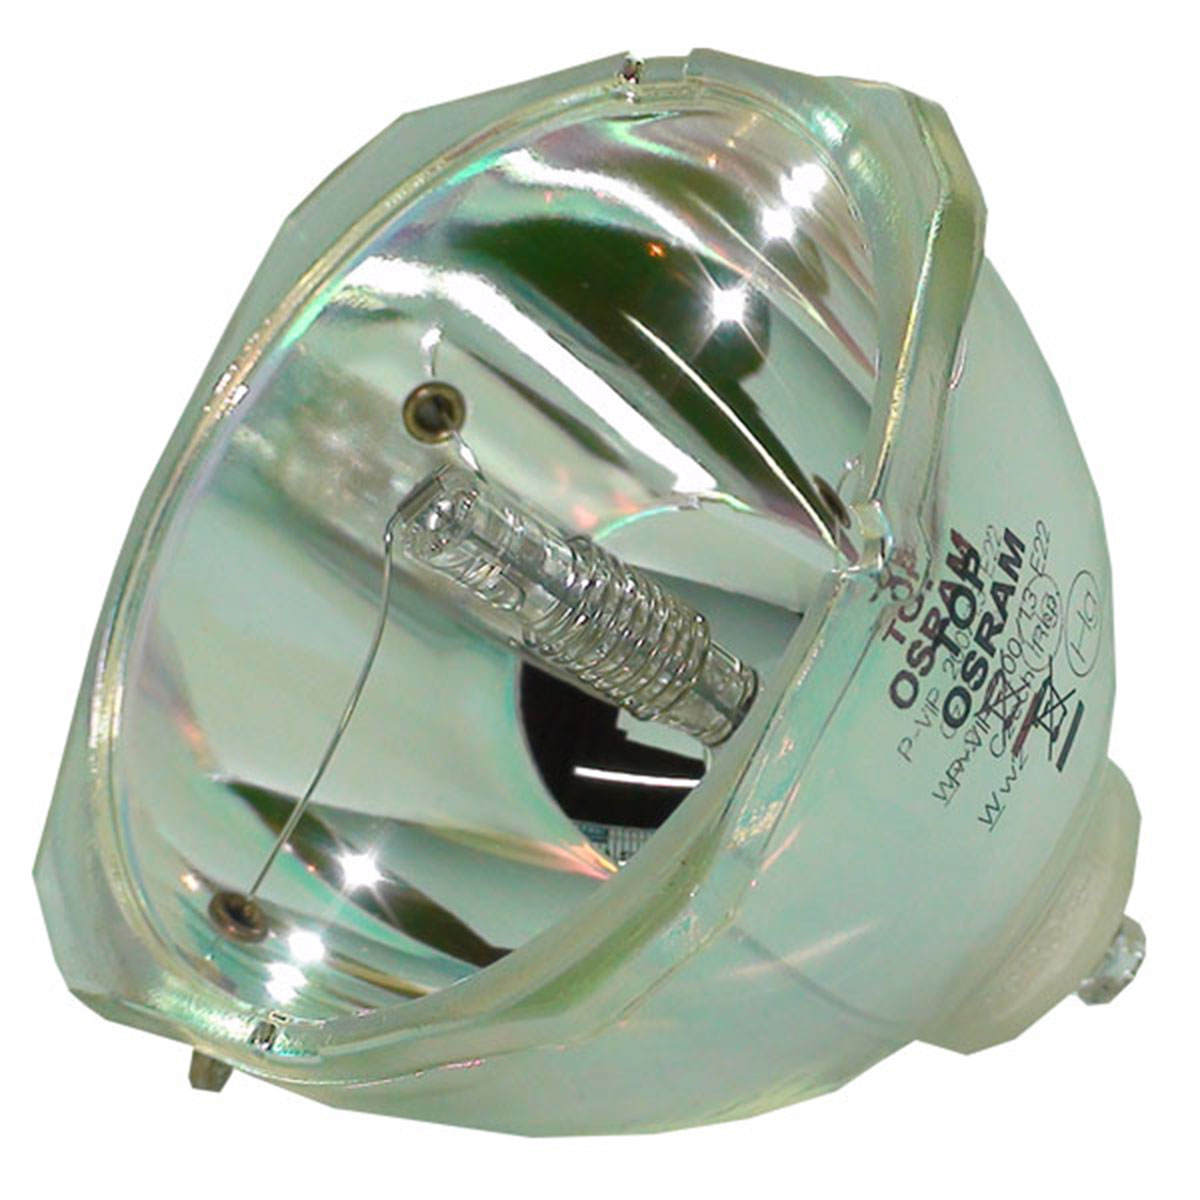 Lutema Platinum for Delta AV-3620 Projector Lamp (Bulb Only) - image 5 of 5